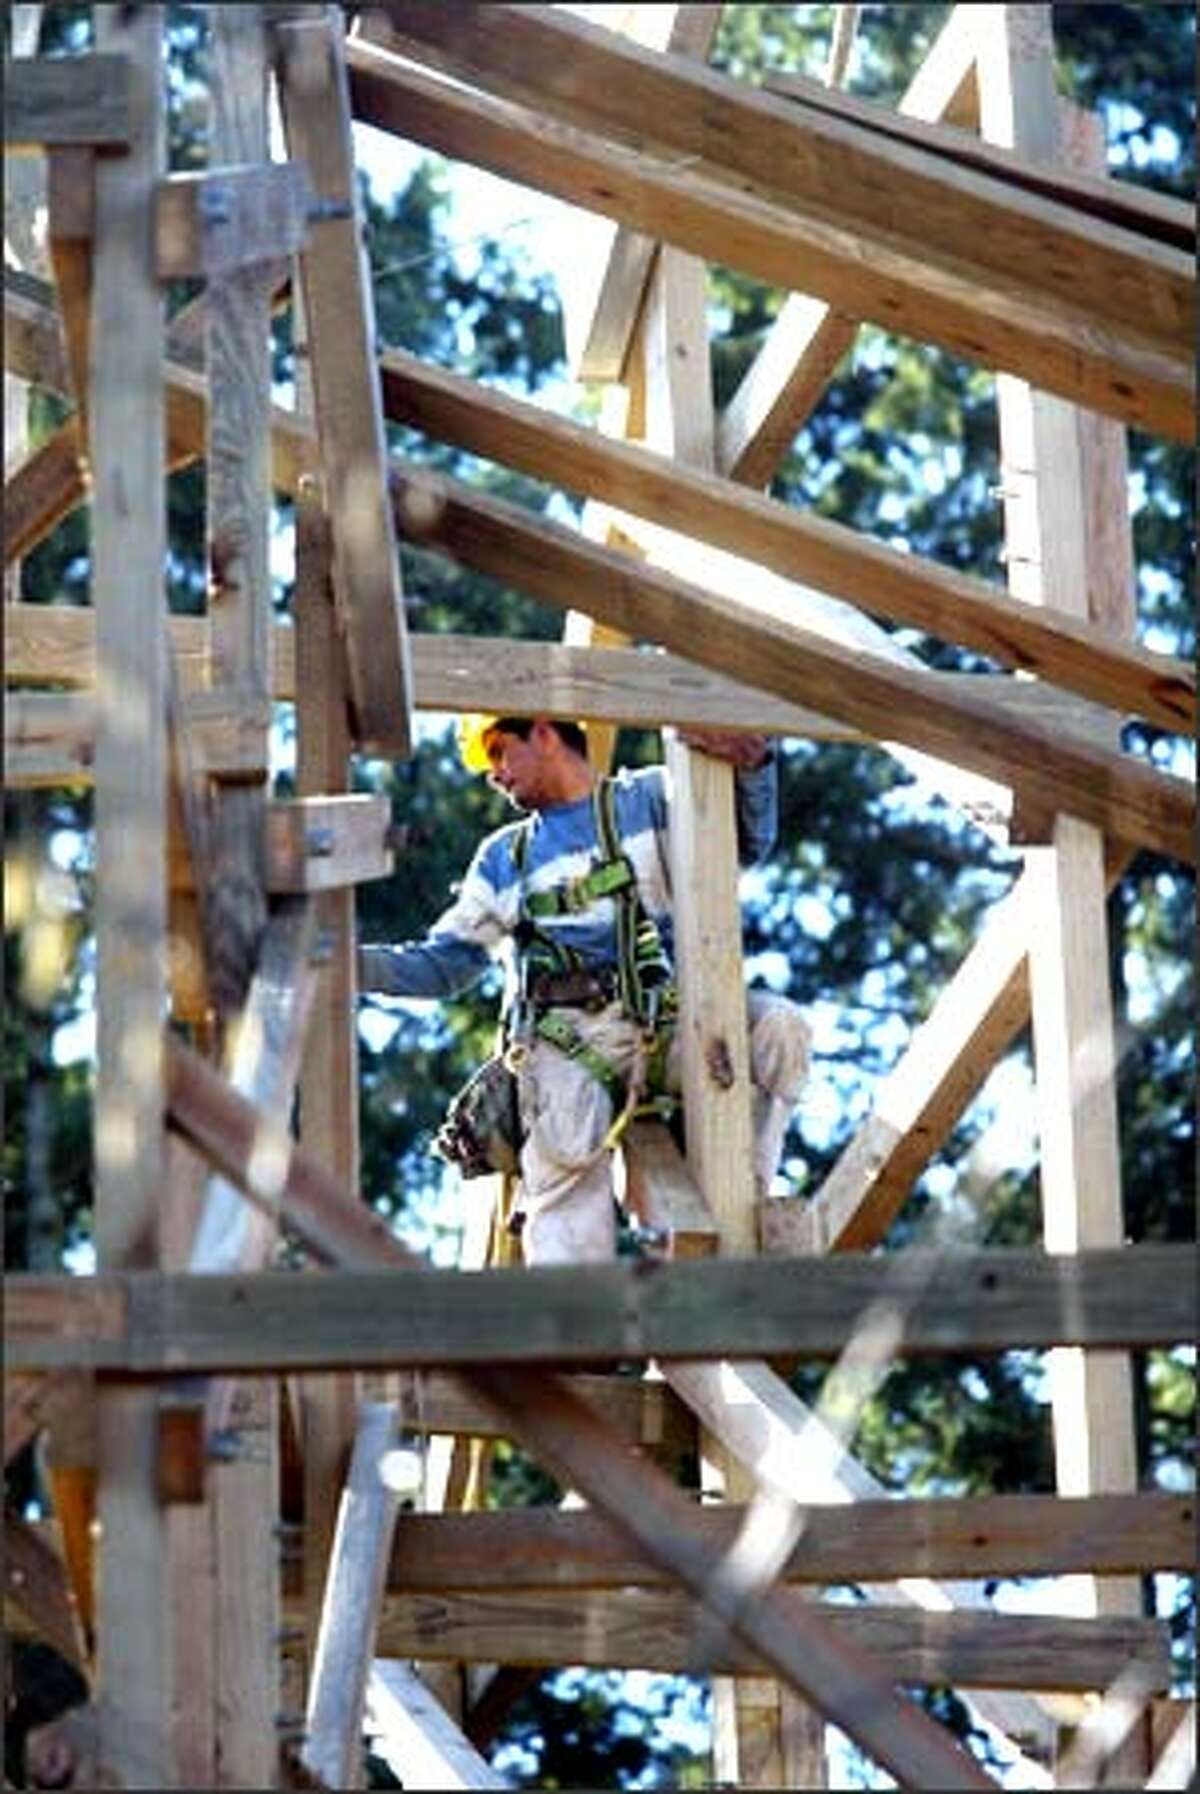 A worker helps put up the TimberHawk roller coaster at Wild Waves/Enchanted Village in Federal Way.